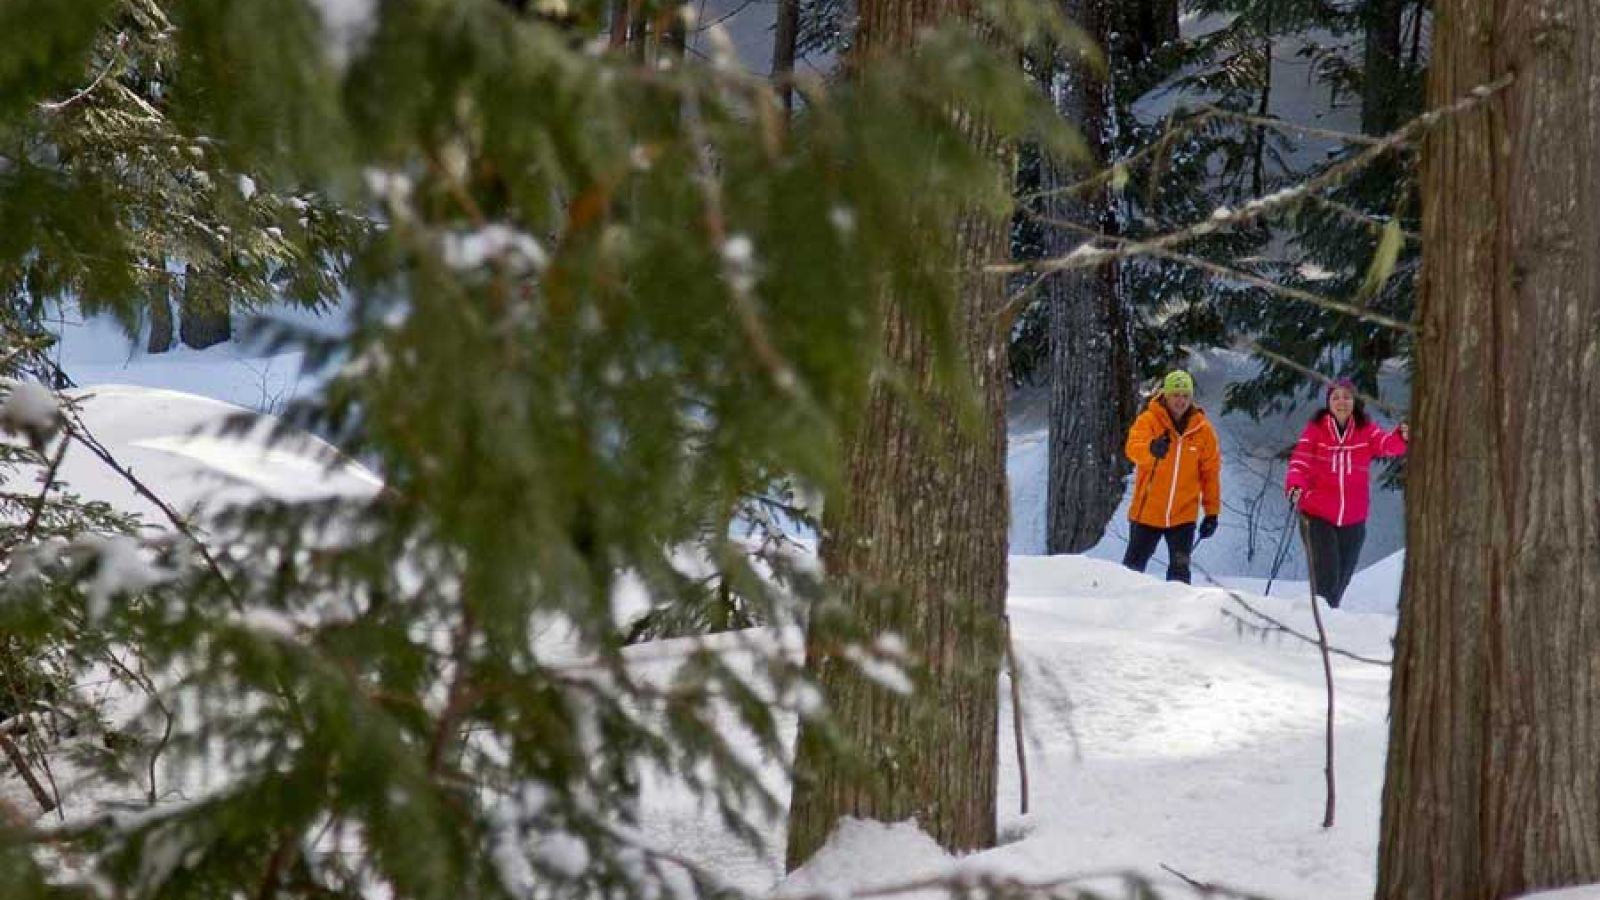 Wonderful cross-country skiing trails at Island Lake Lodge.